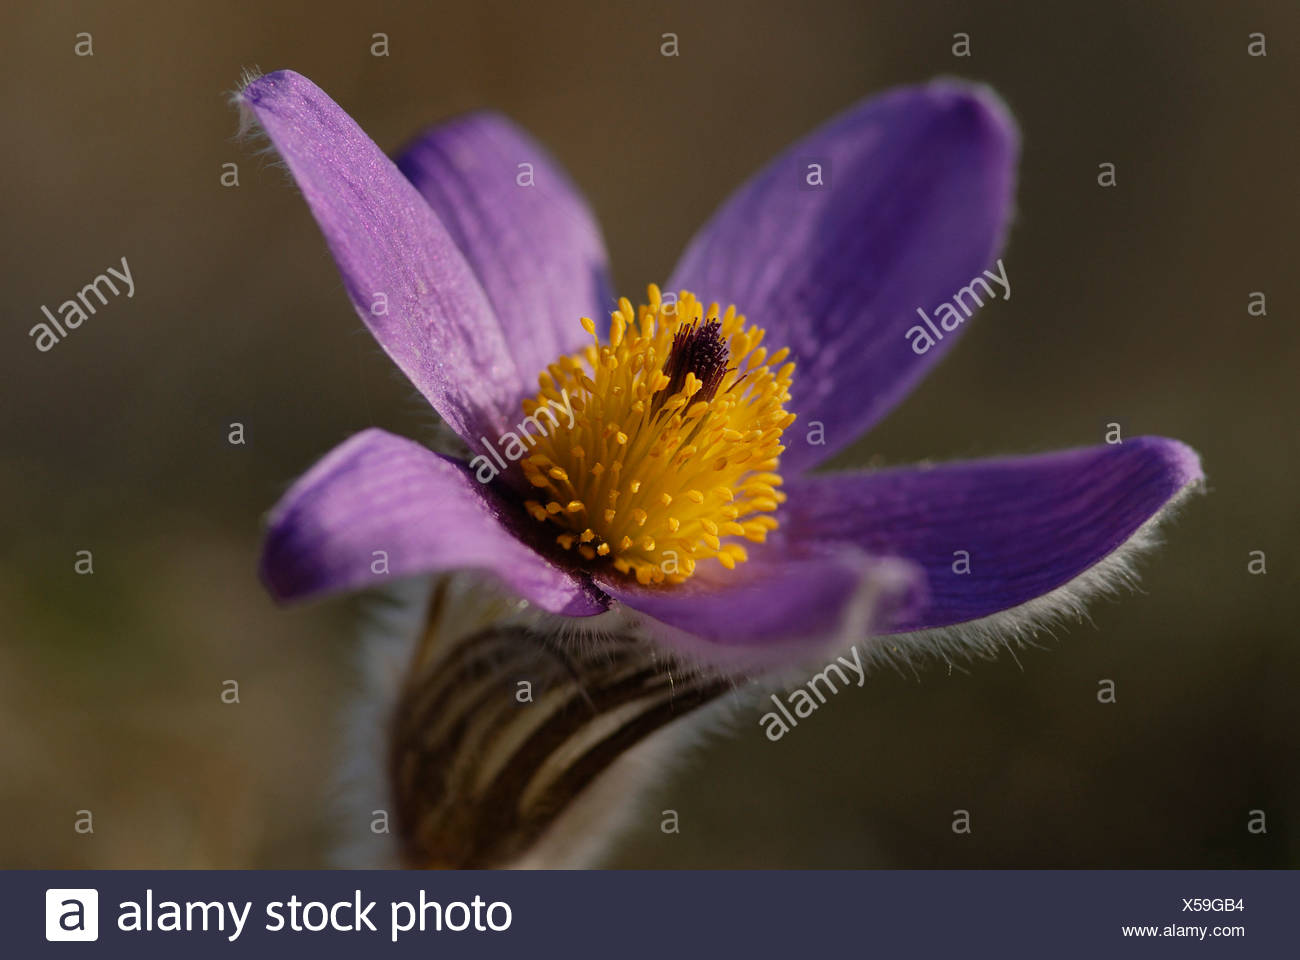 Pasque flower (Pulsatilla) - Southern Germany - Stock Image